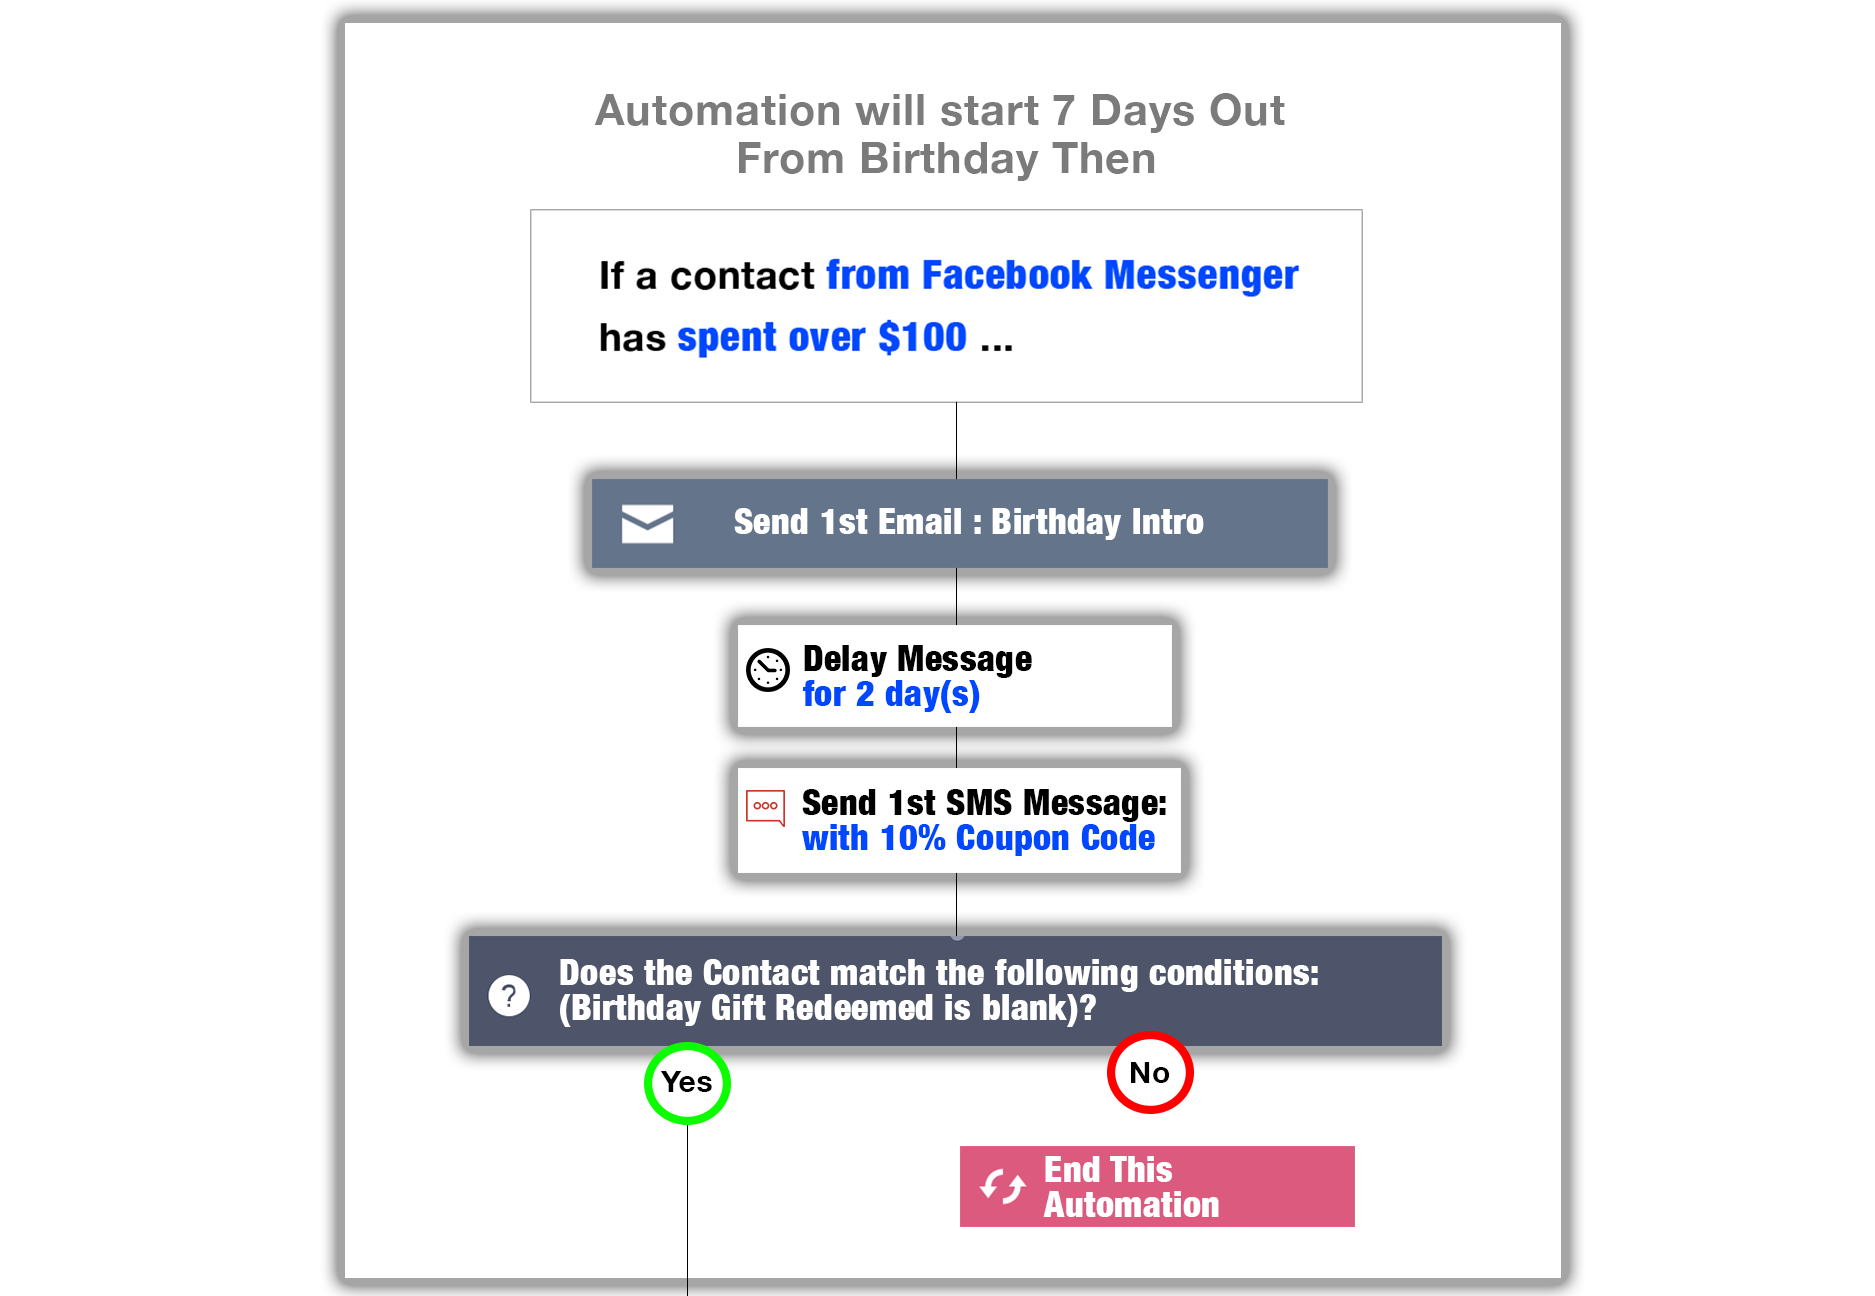 Section 6 - Picture of Diagram of How Emails, Text and Notifications Work